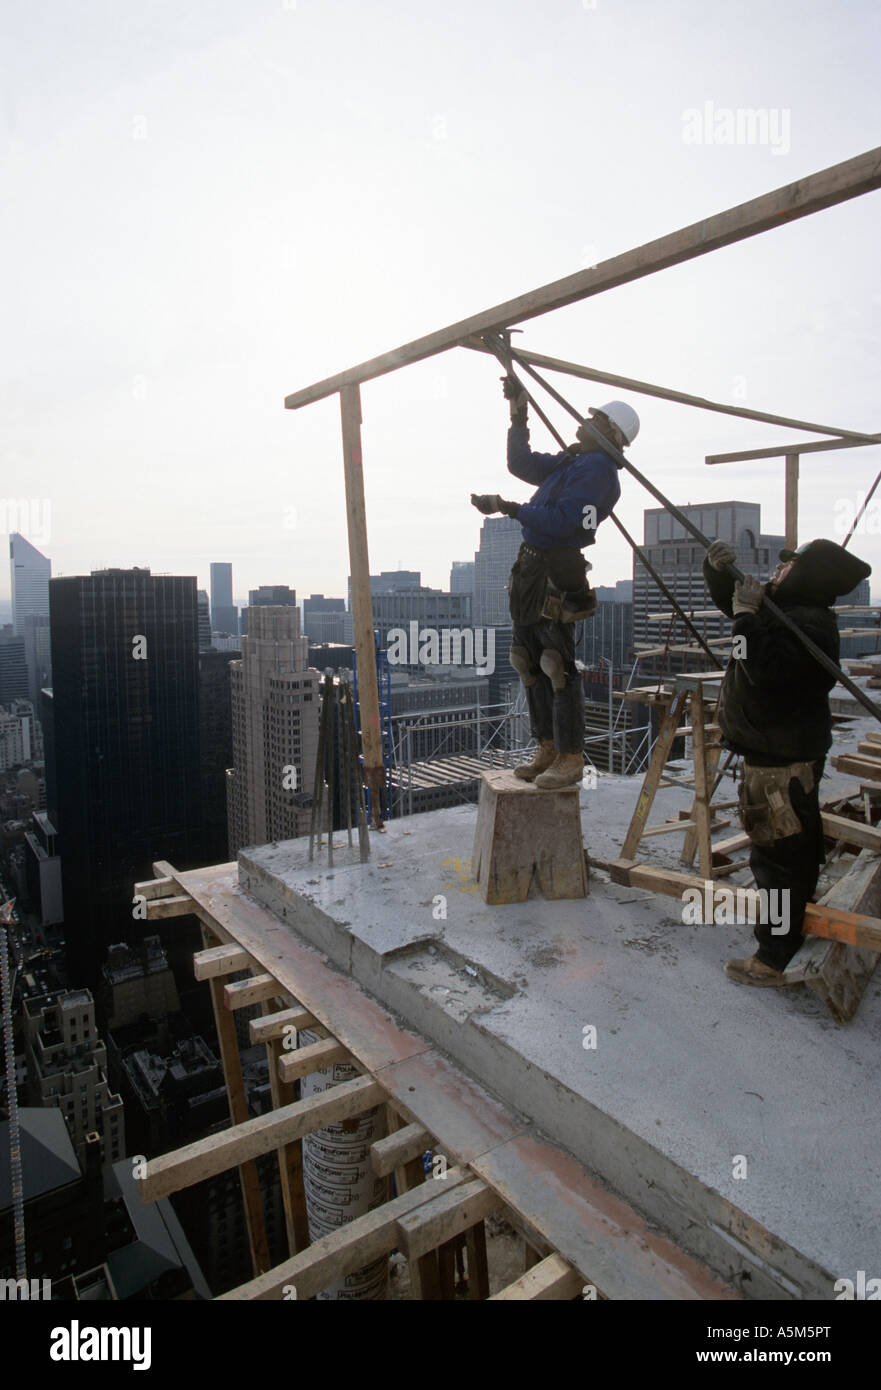 Carpenters build framing for reinforced concrete construction in New ...